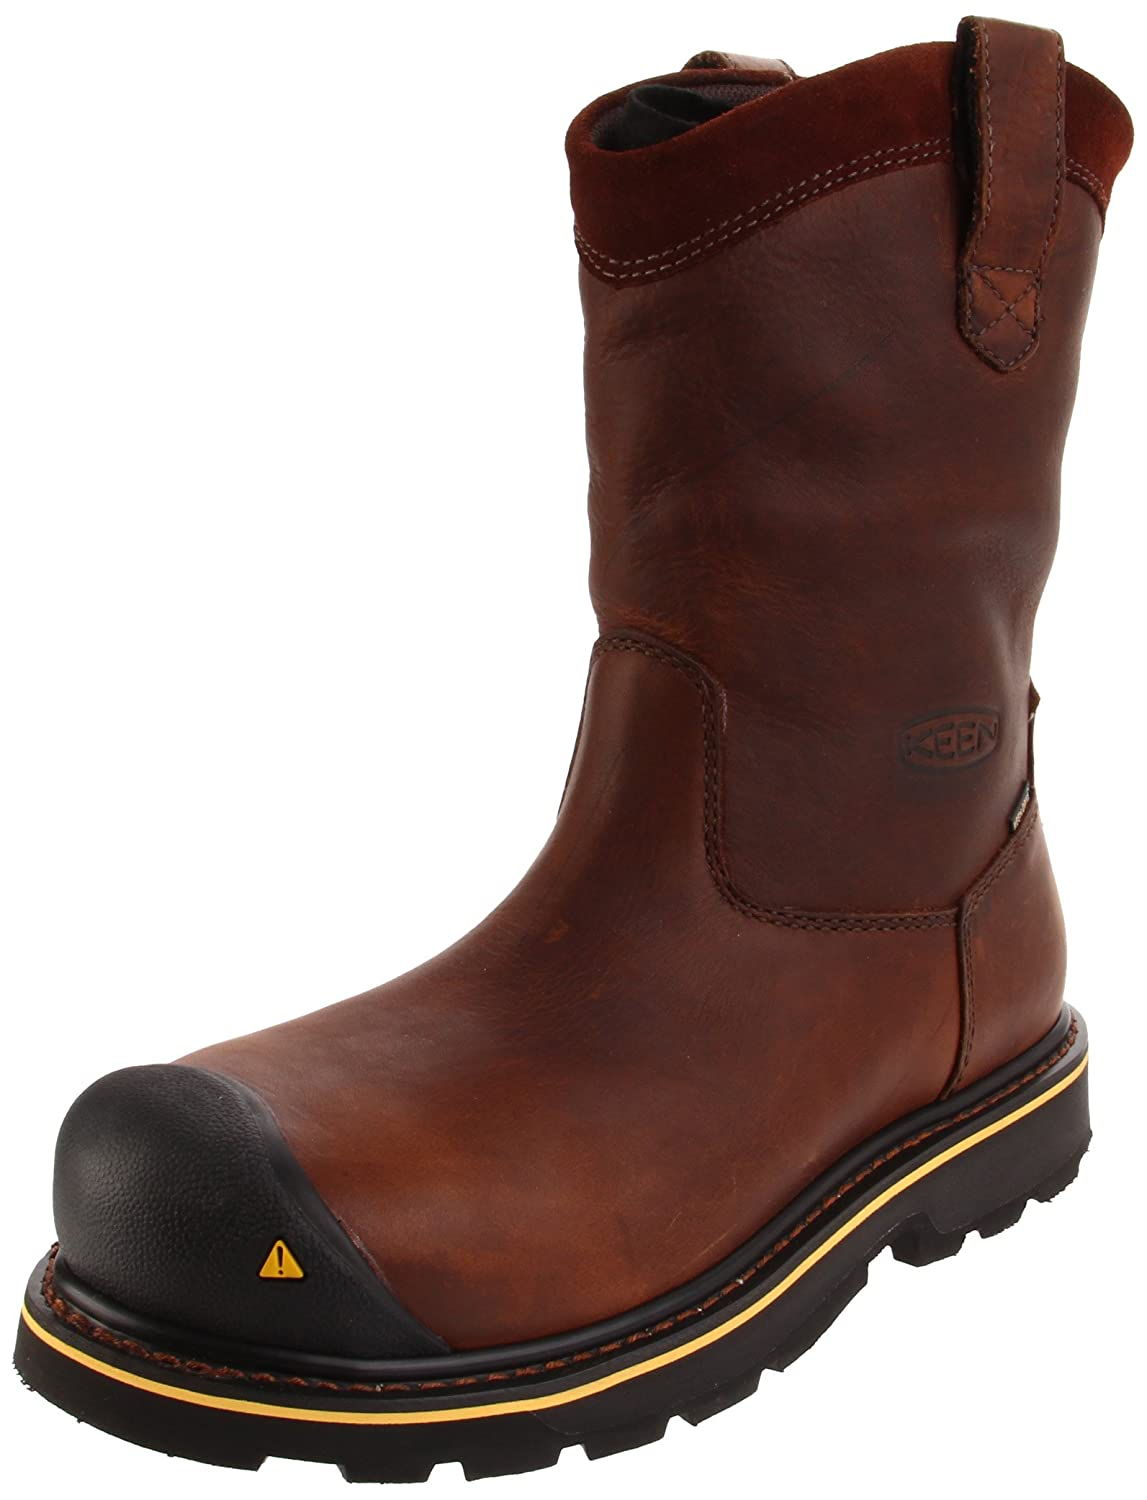 steel toe work boots for cheap yu boots